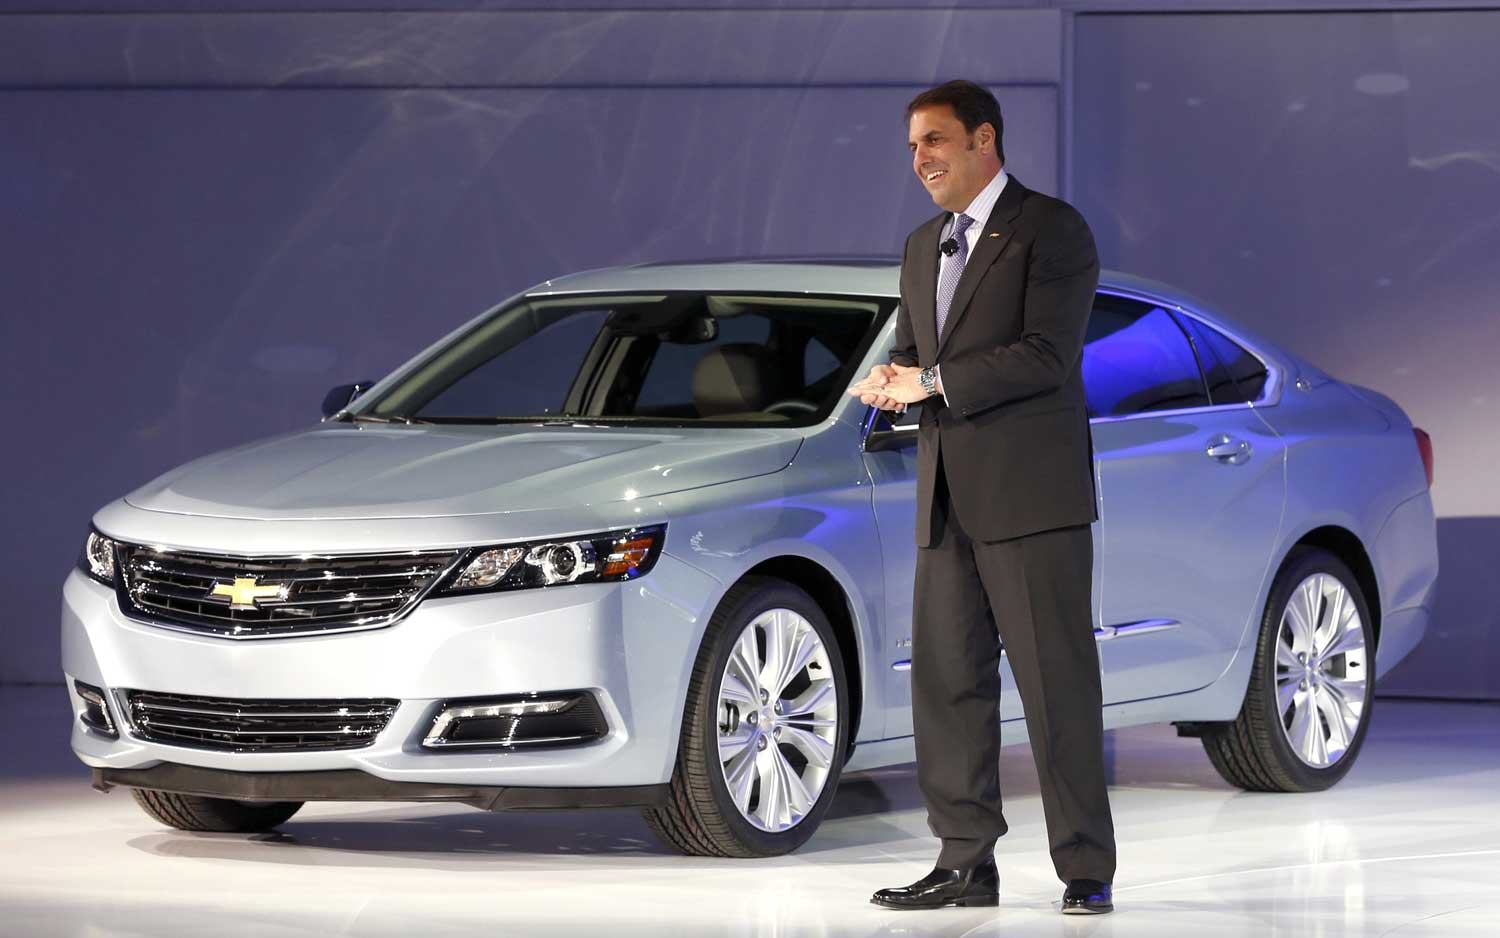 2014 Chevrolet Impala With Mark Reuss